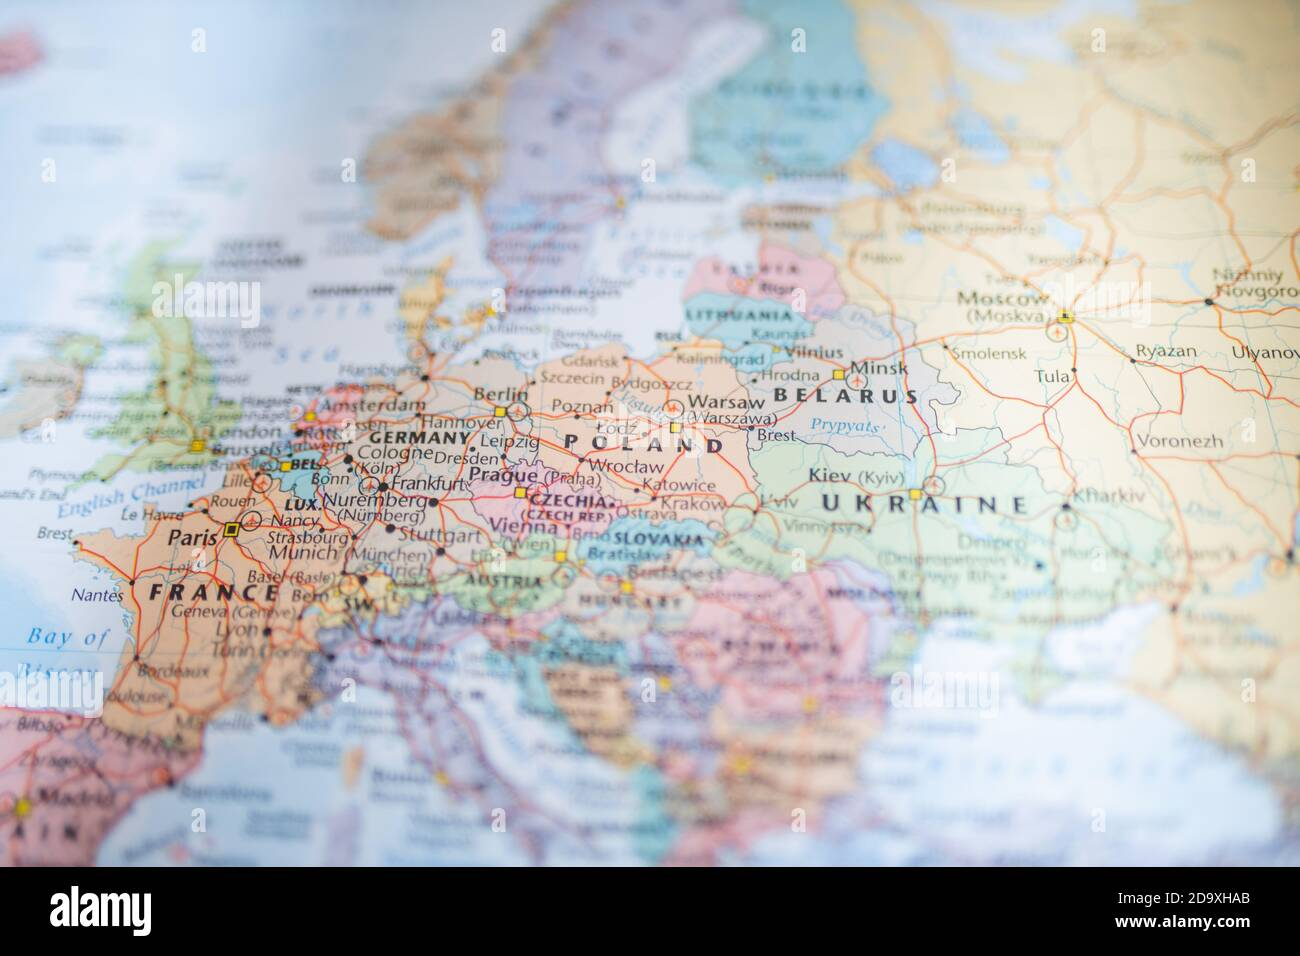 Germany Outline Silhouette Map Illustration High Resolution Stock Photography And Images Alamy